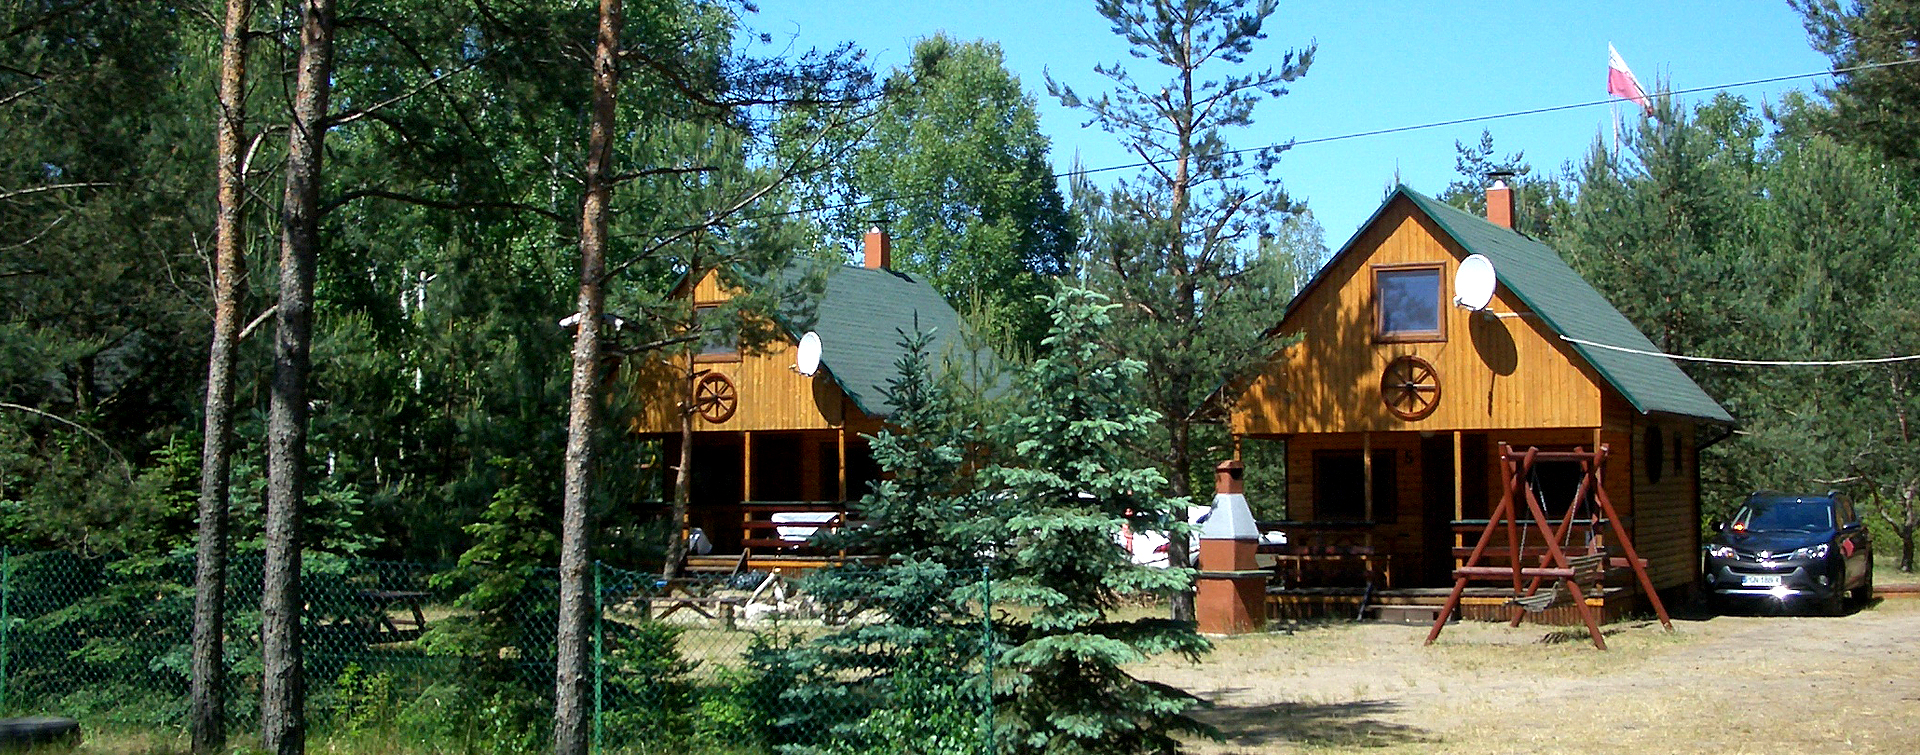 resort of wooden cottages